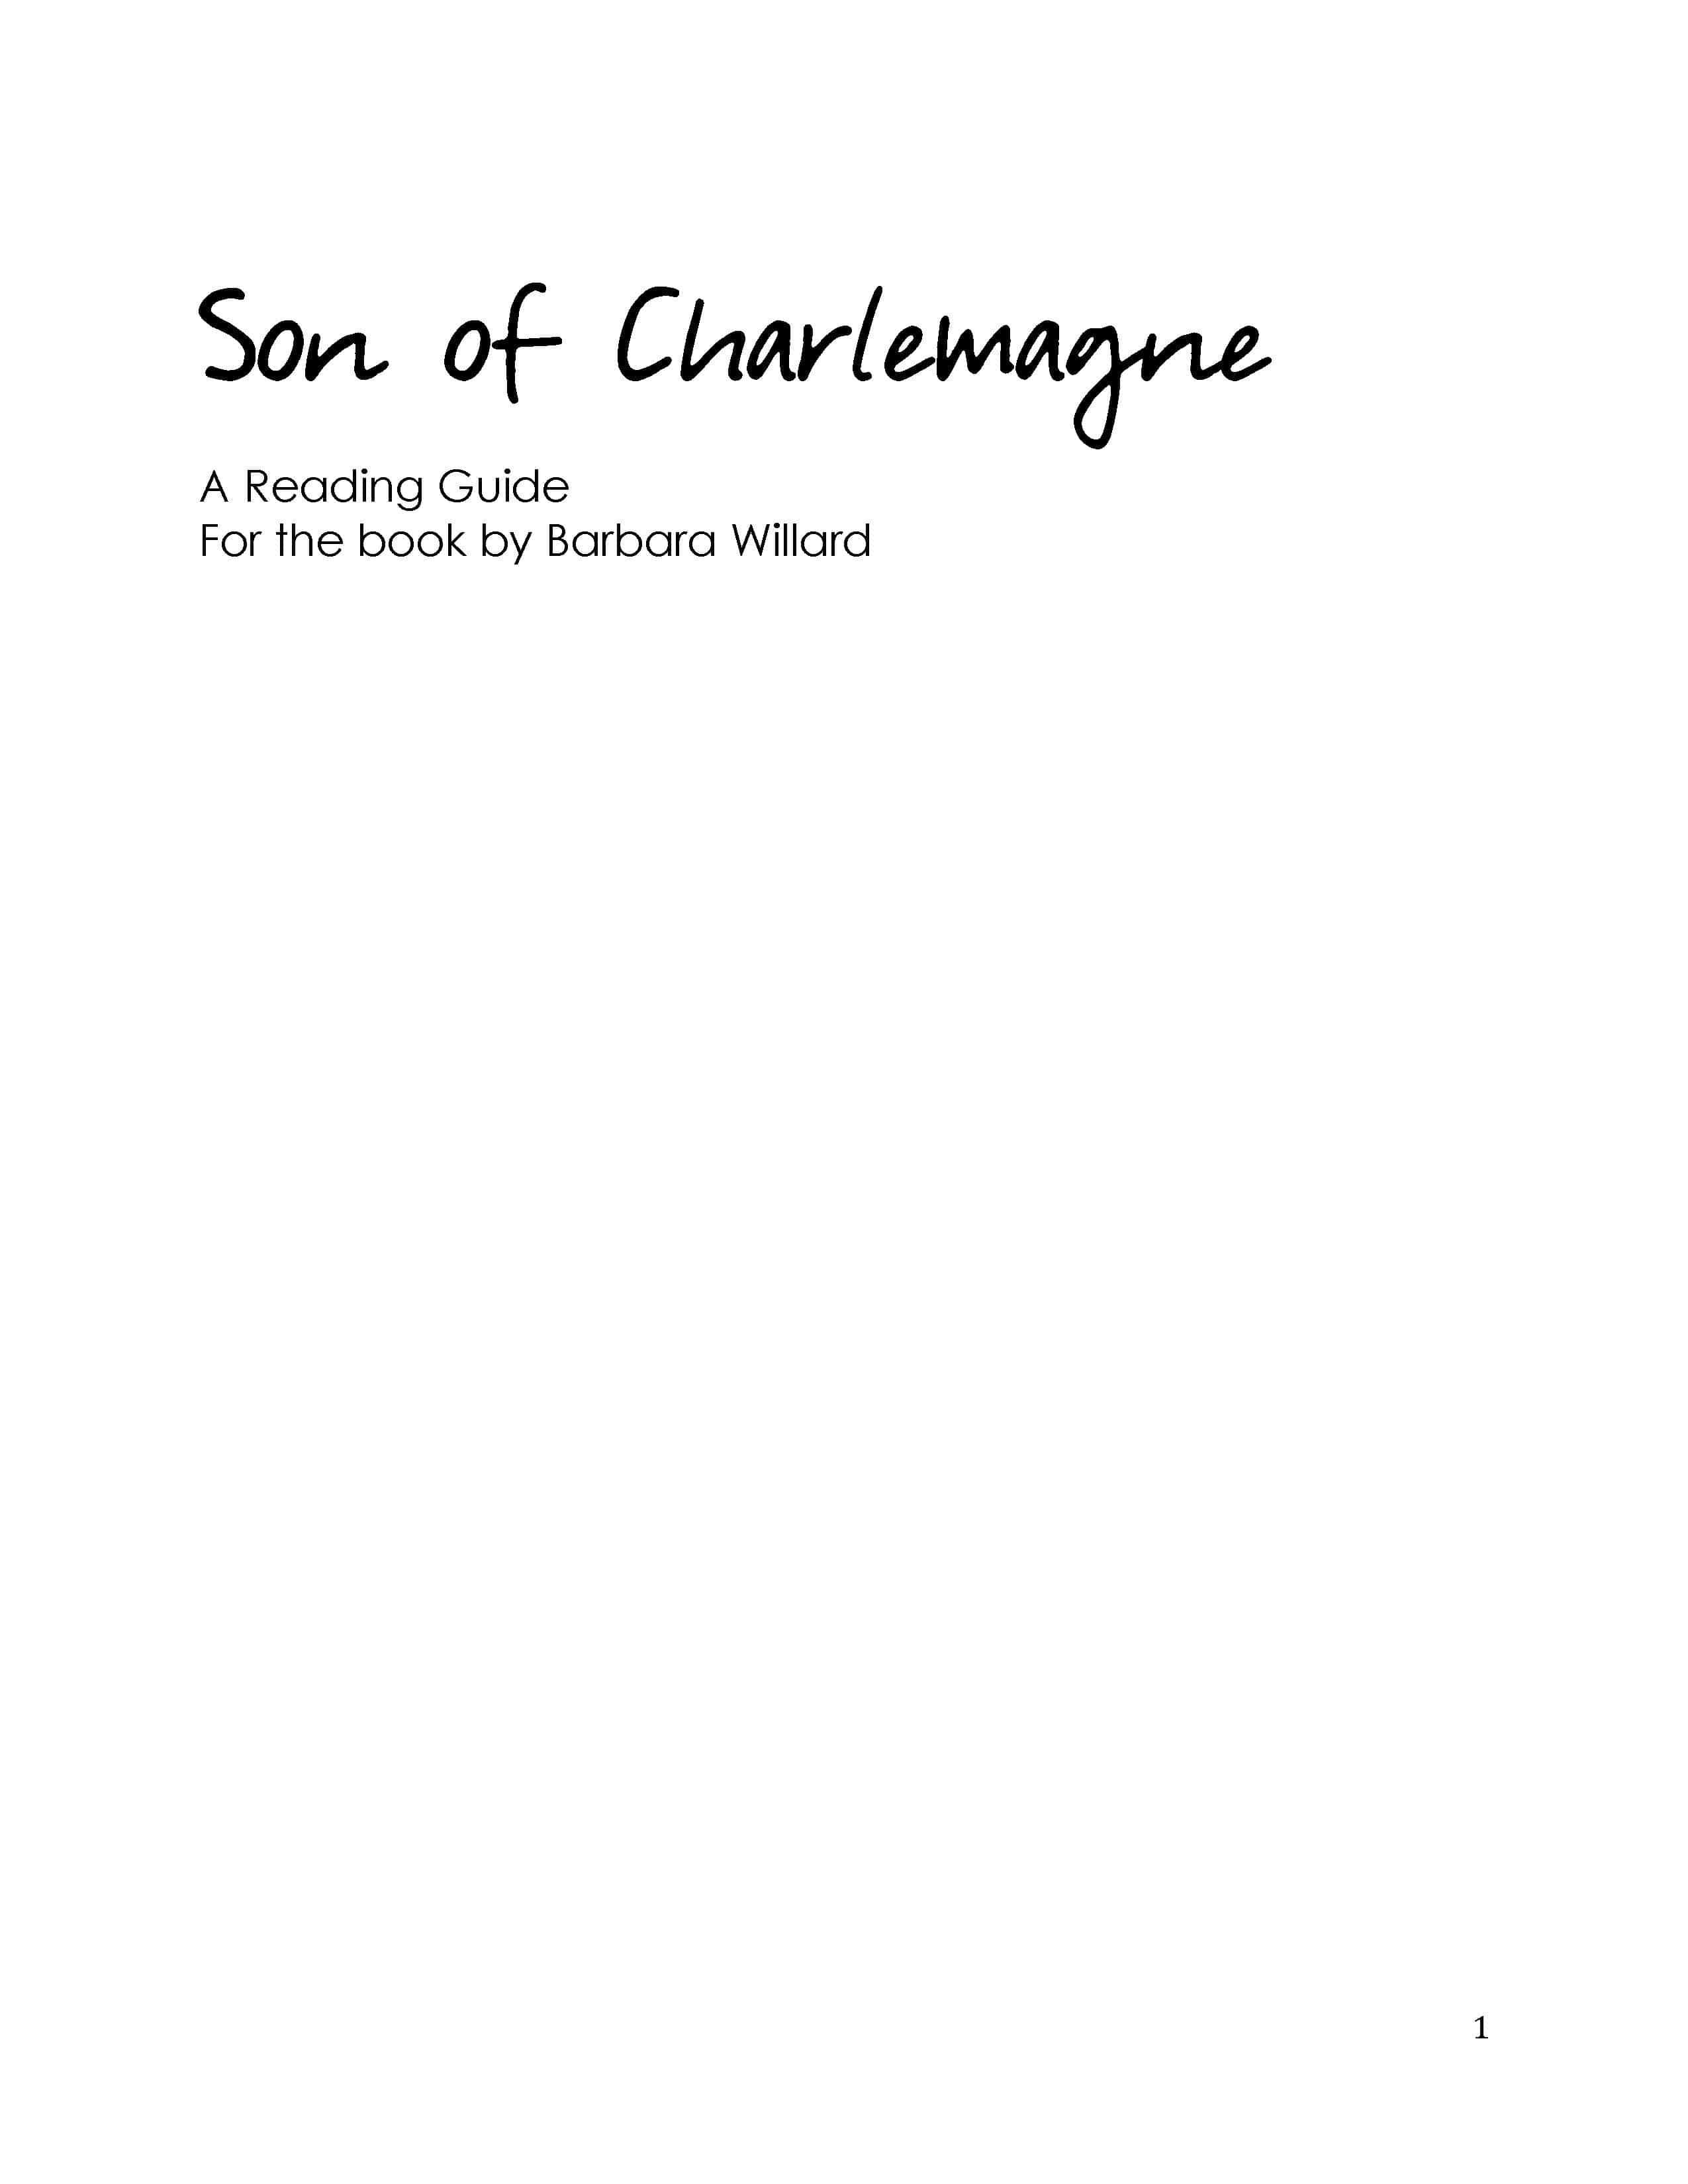 Son of Charlemagne – Reading Guide (Download)